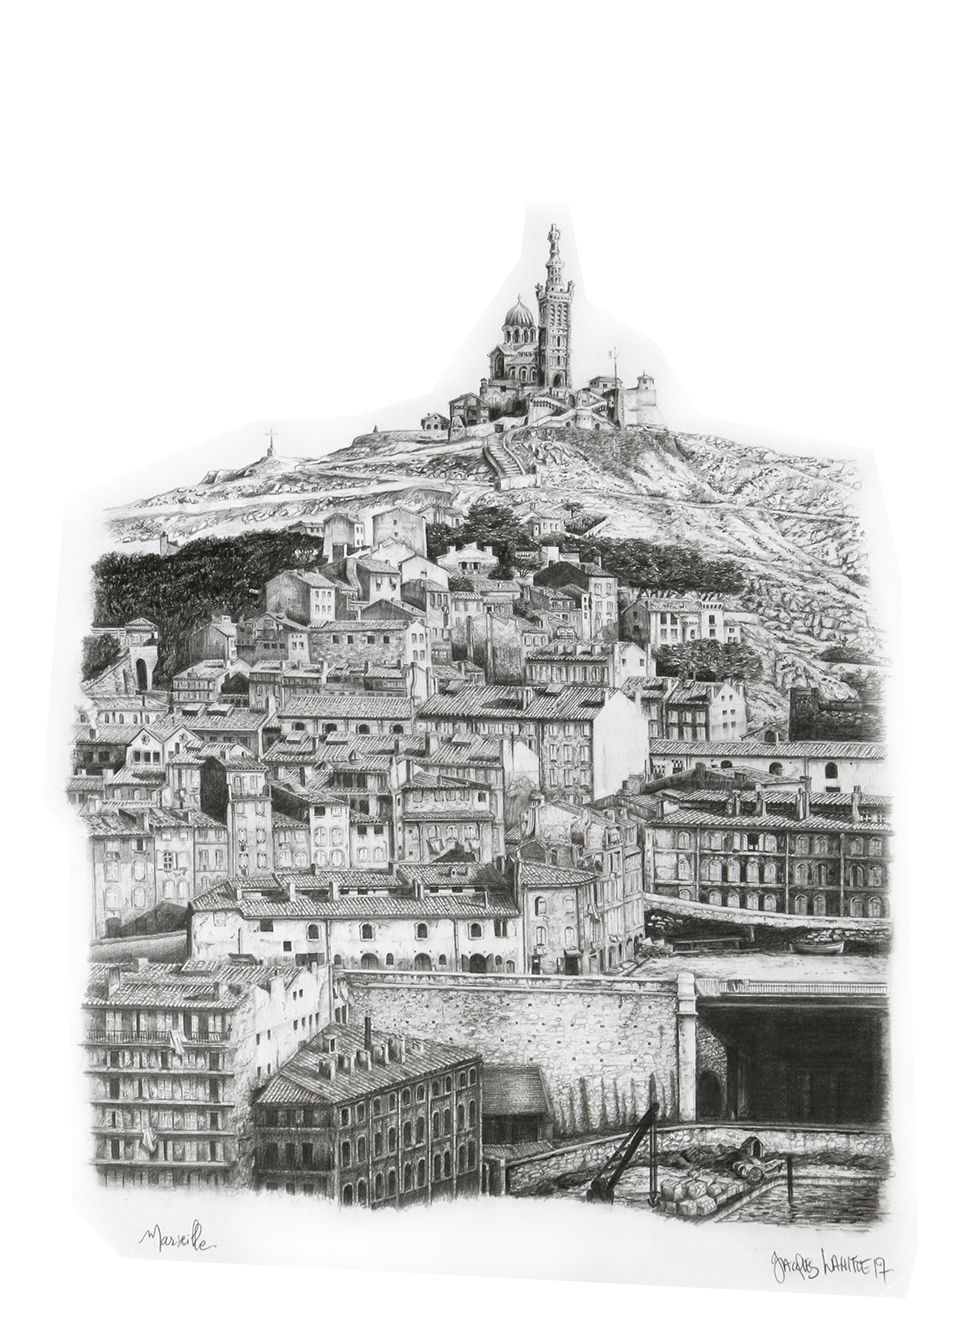 Landscape marseille france drawing by jacques lahitte